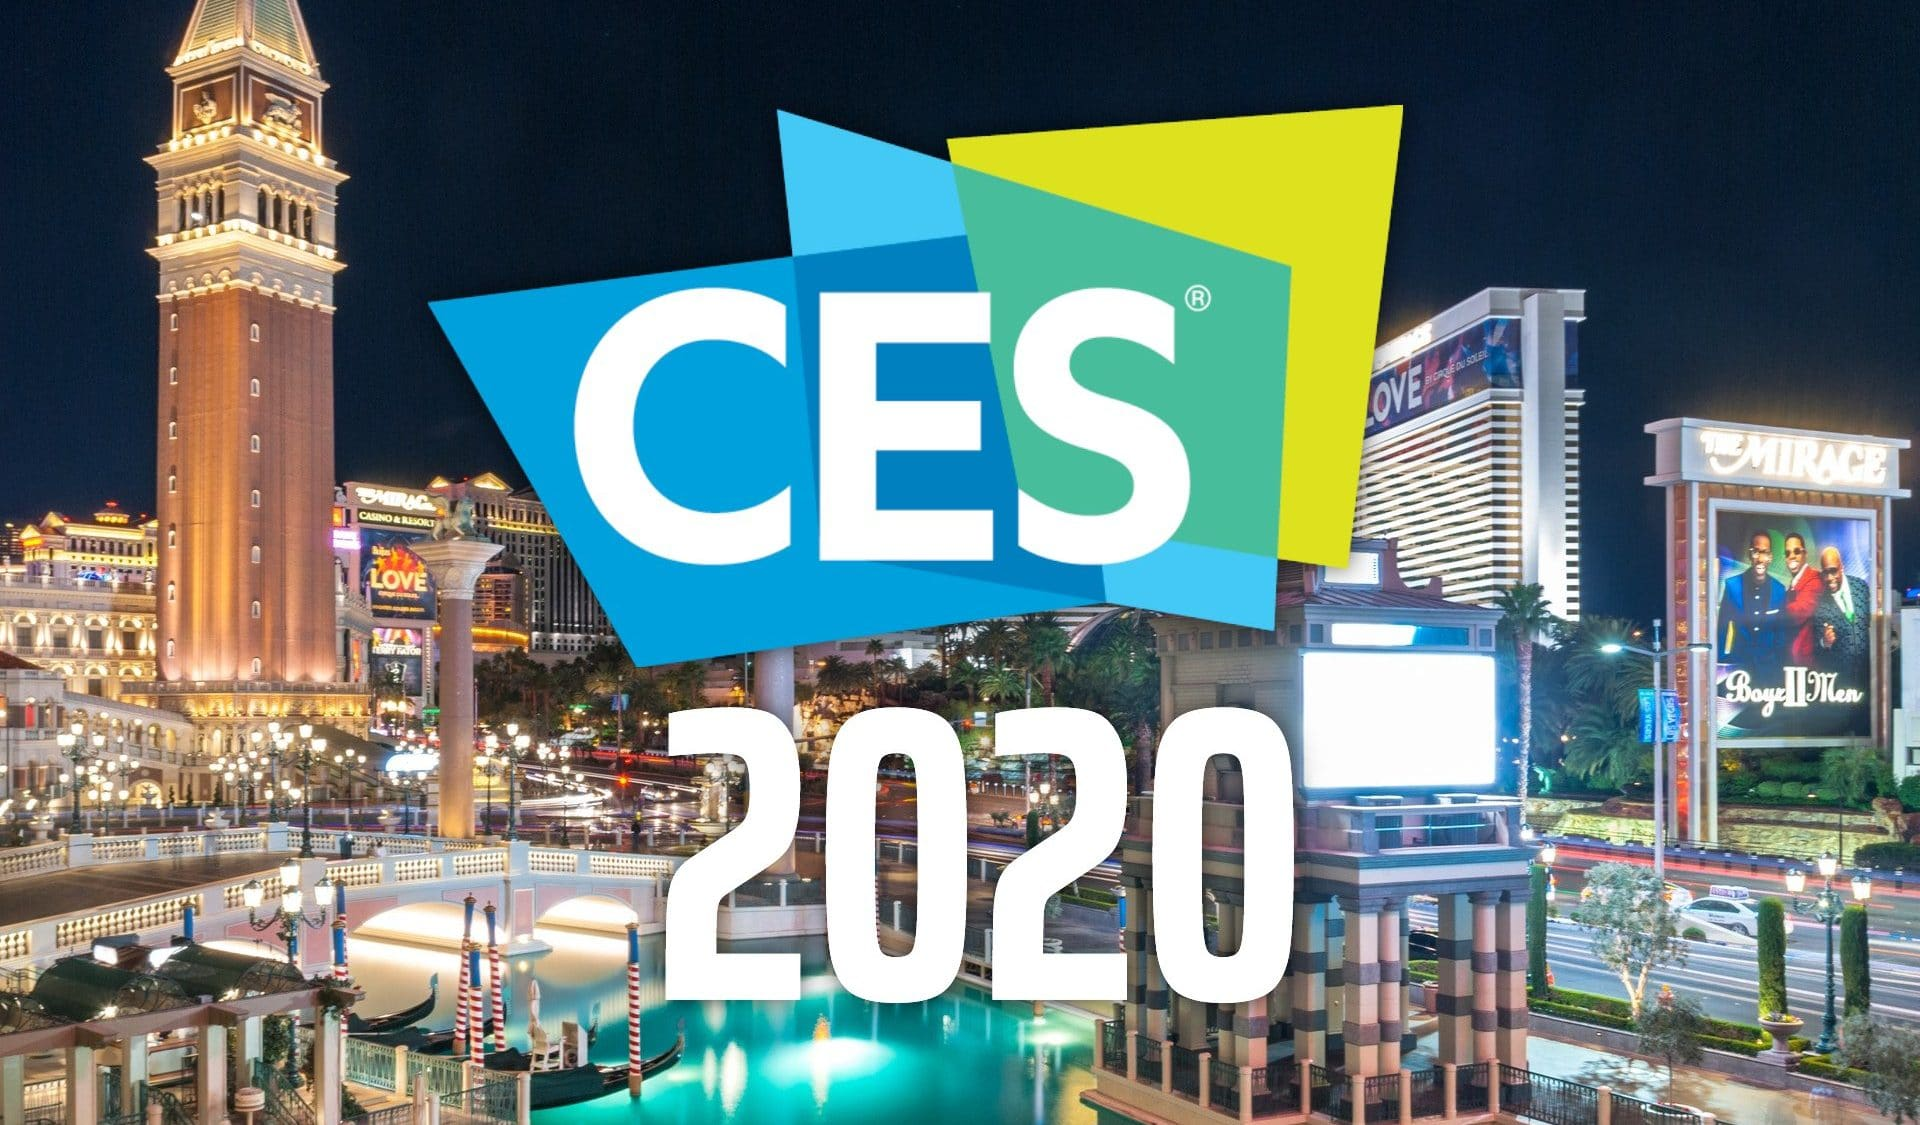 ces 2020 image featured chrome unboxed